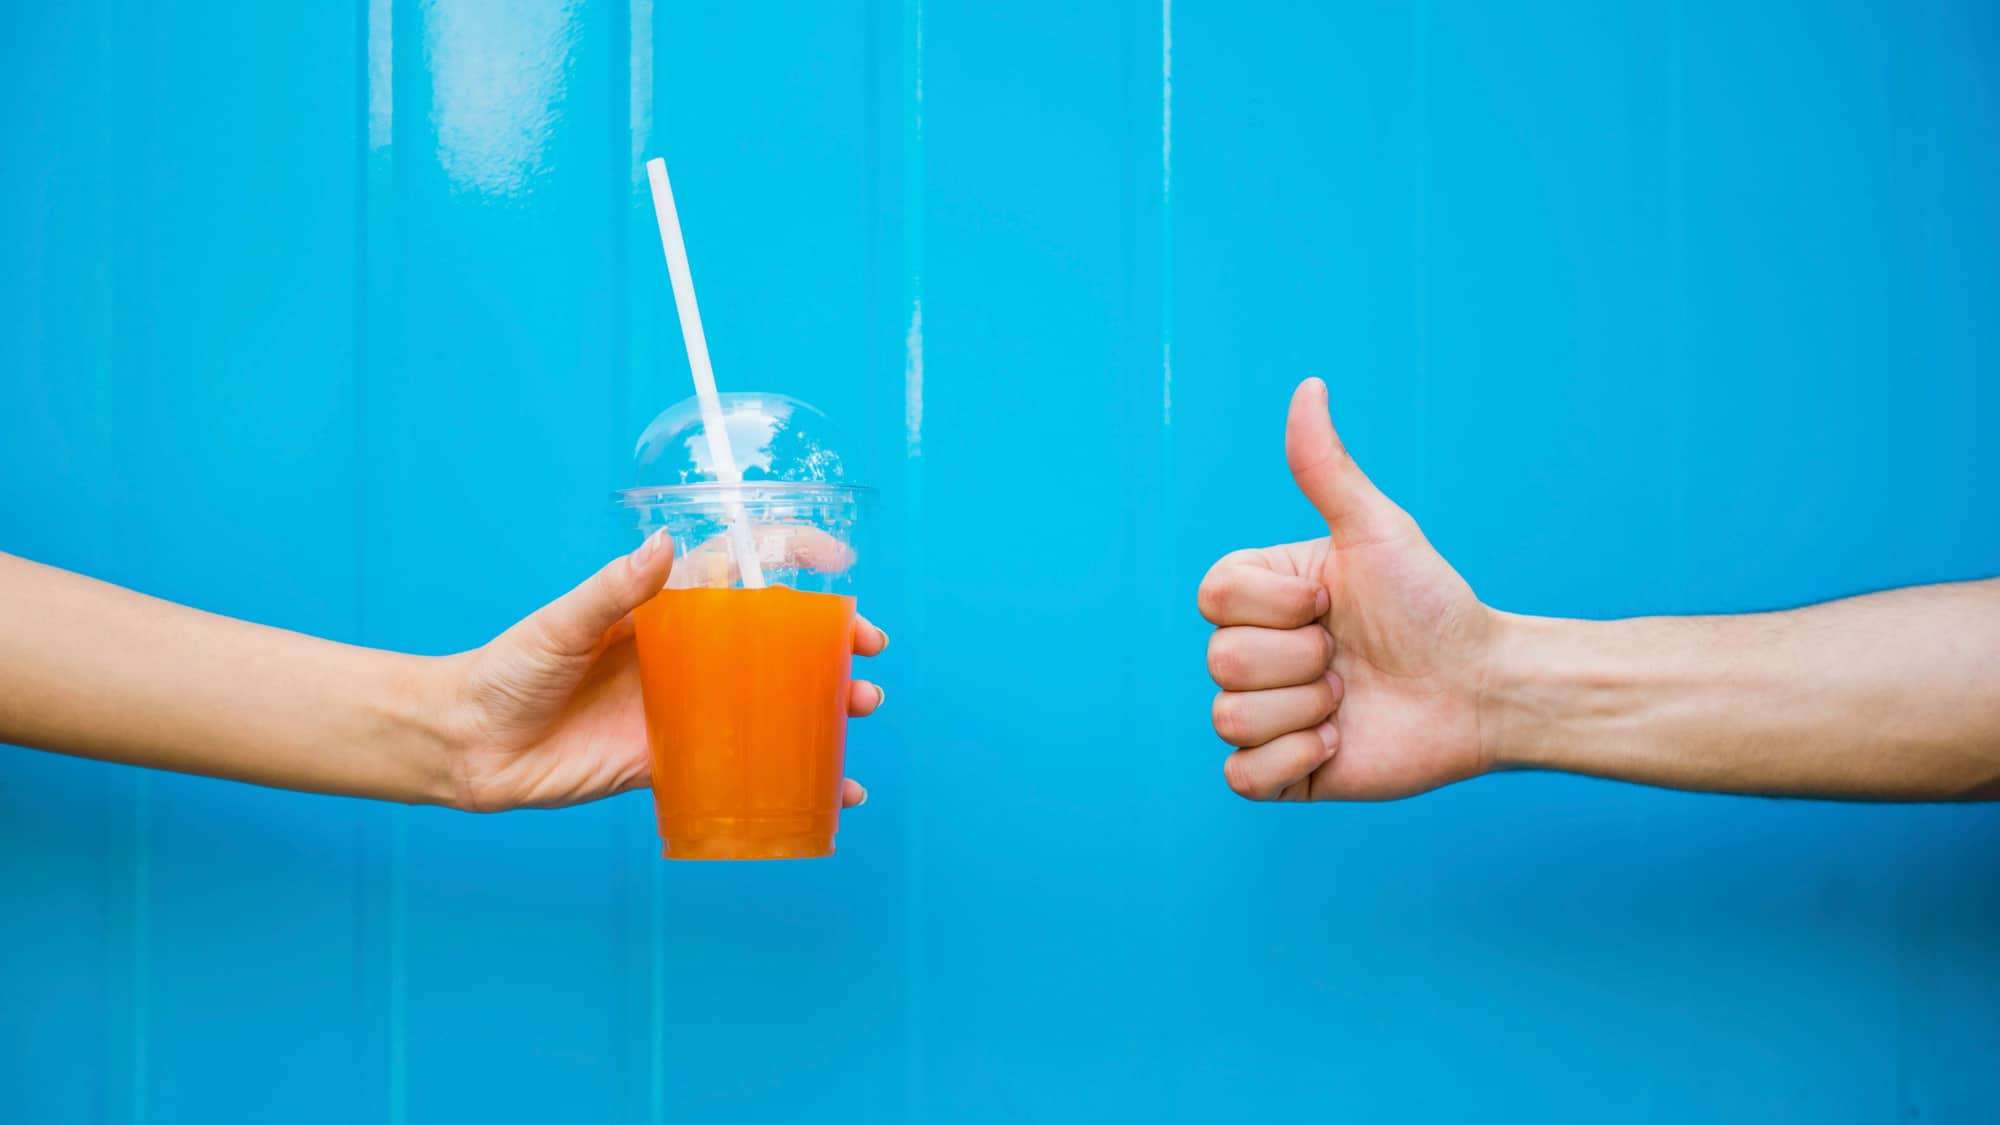 Smoothies made easy - hand to hand | Courtesy of Smoothie Solutions